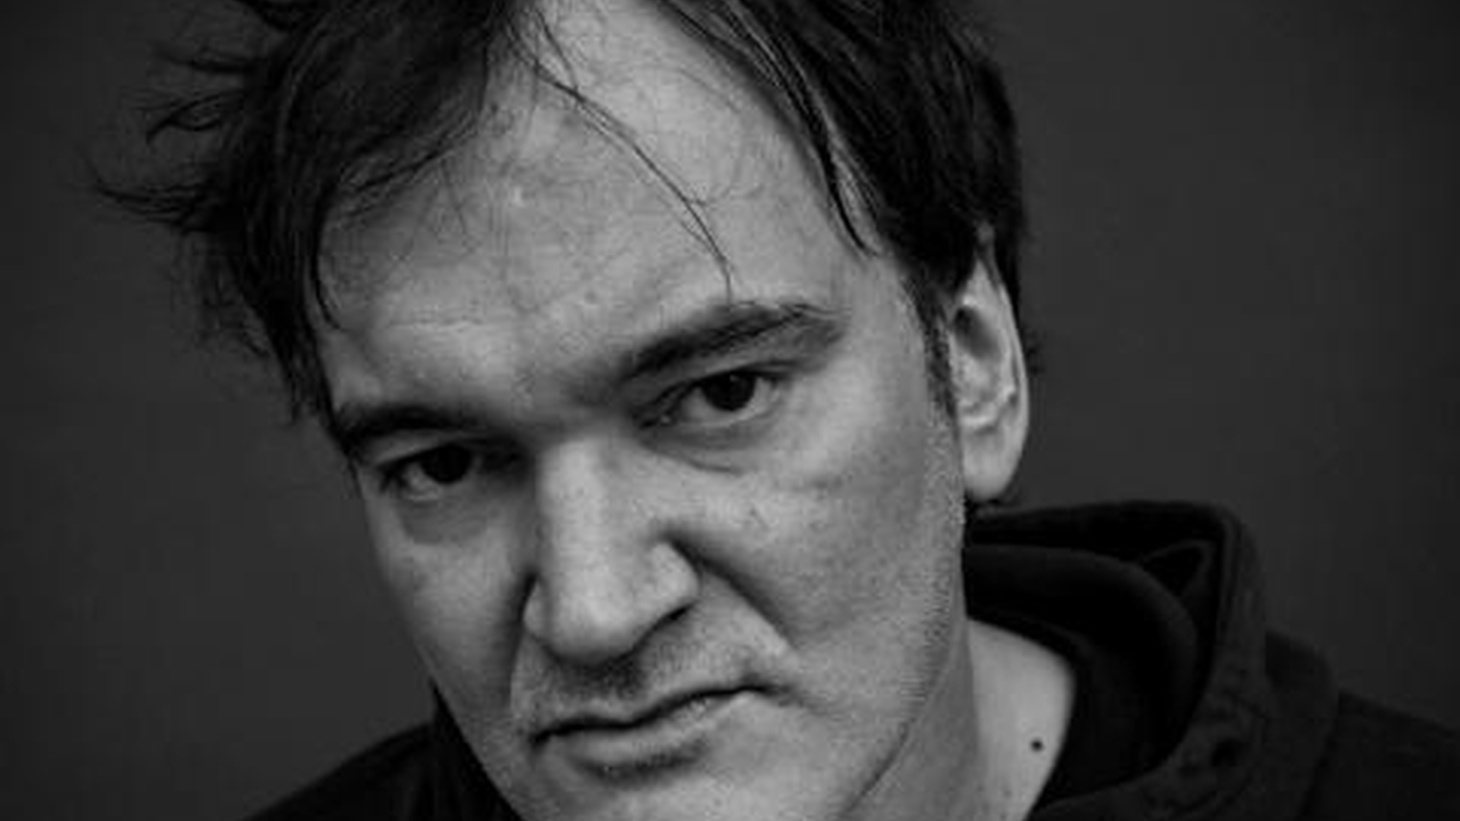 Quentin Tarantino's new film depicts an ex-slave's heroic journey in the context of a Western.